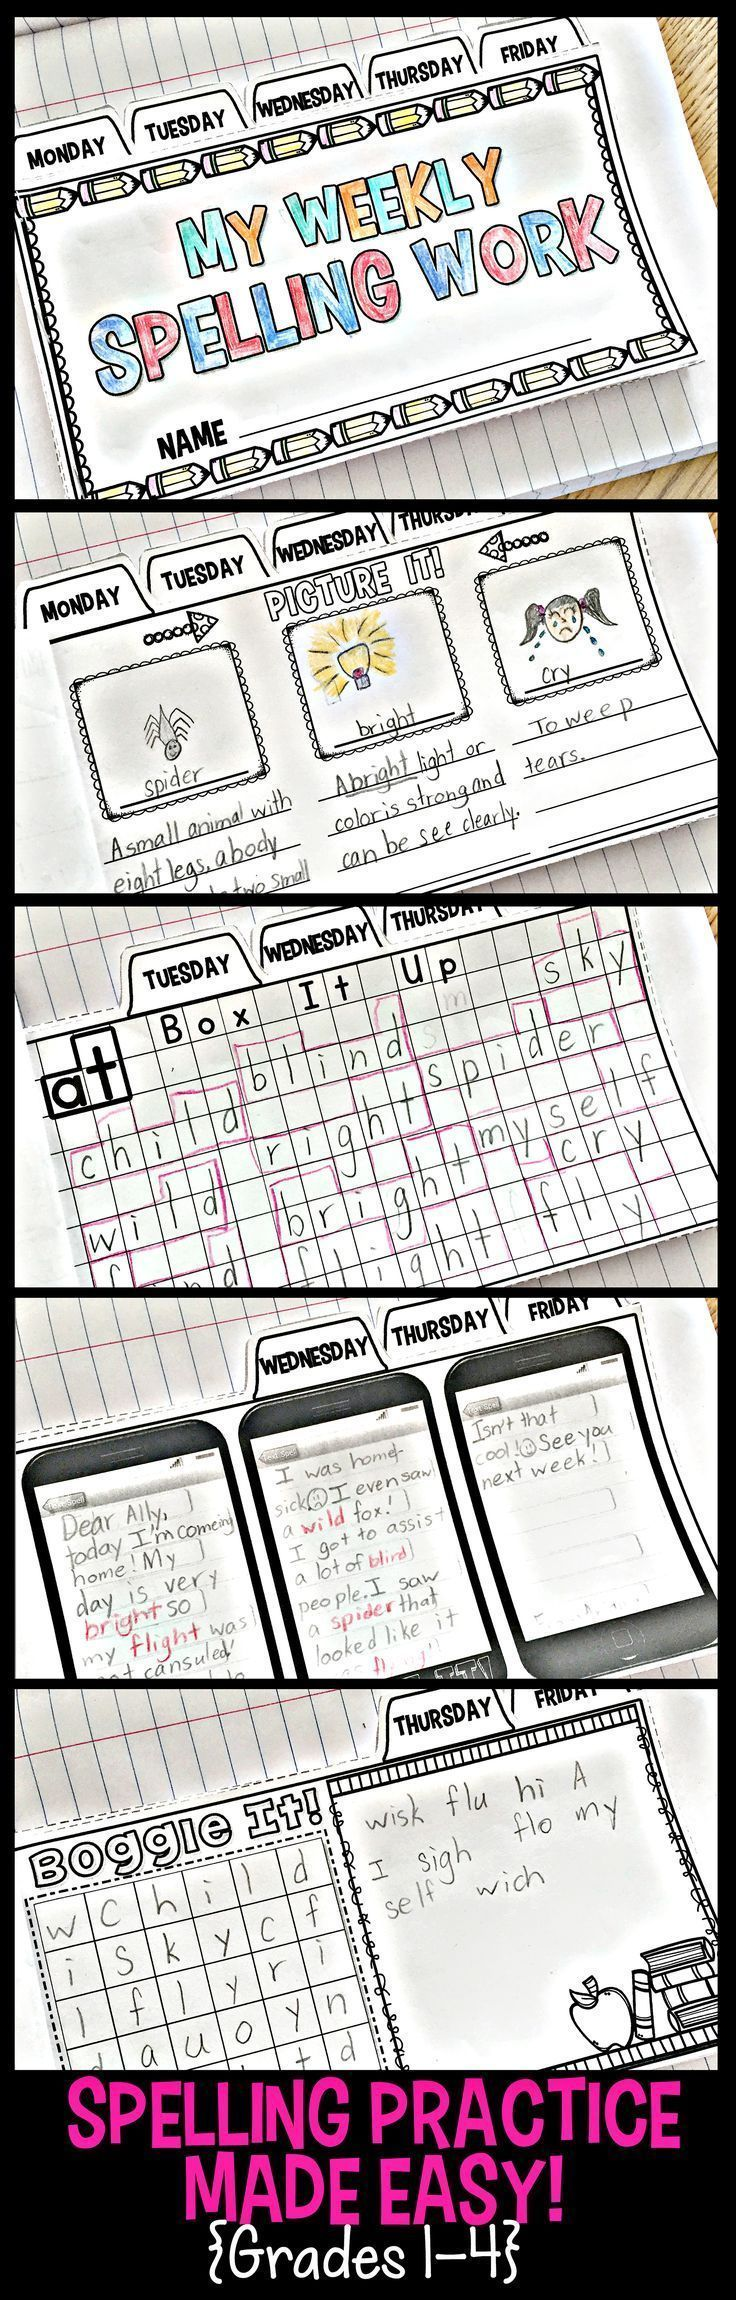 Learning Spelling Words ...How can you make this tedious activity fun and�